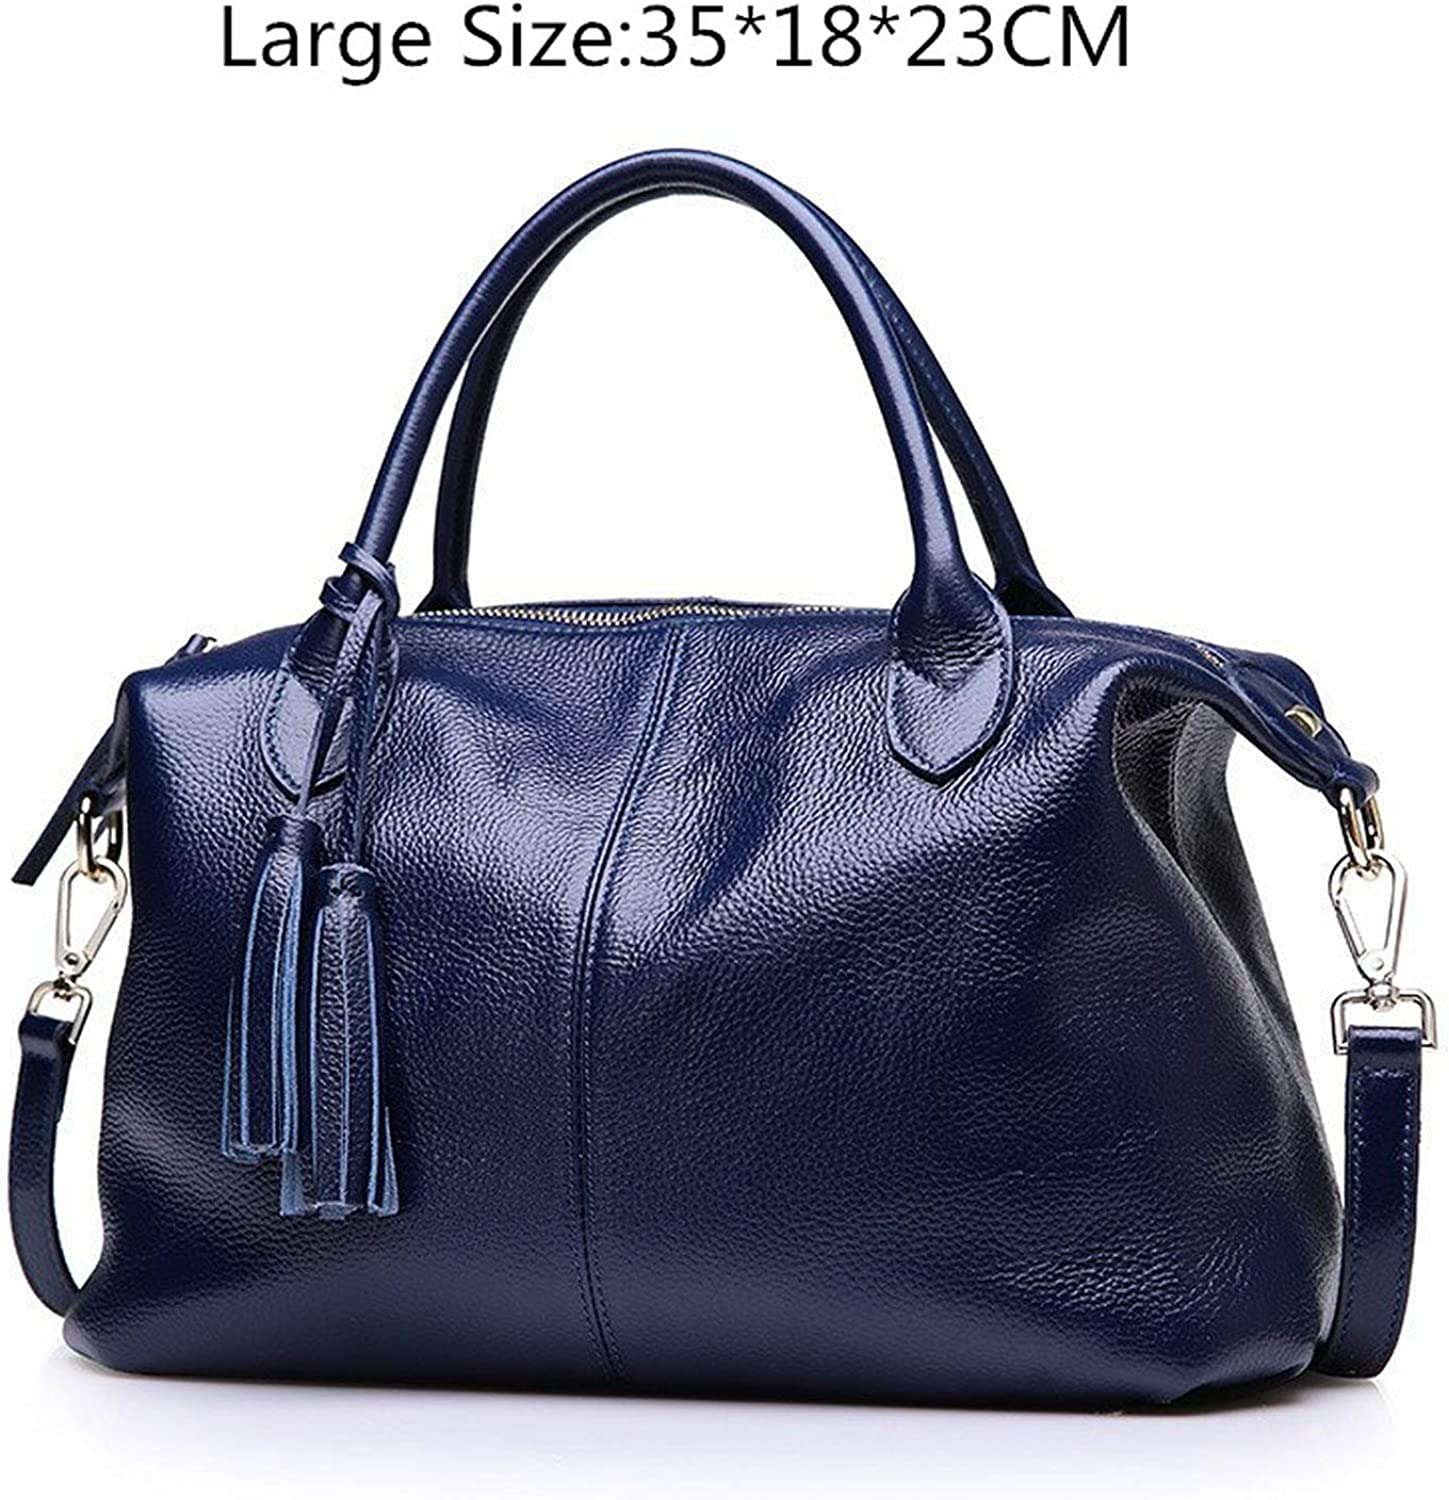 Erec bomb 100% Nature Cow Genuine Leather Women's Handbags Tote First Layer for Female Messenger Bags Satchel Fringed Shoulder Bags PT11